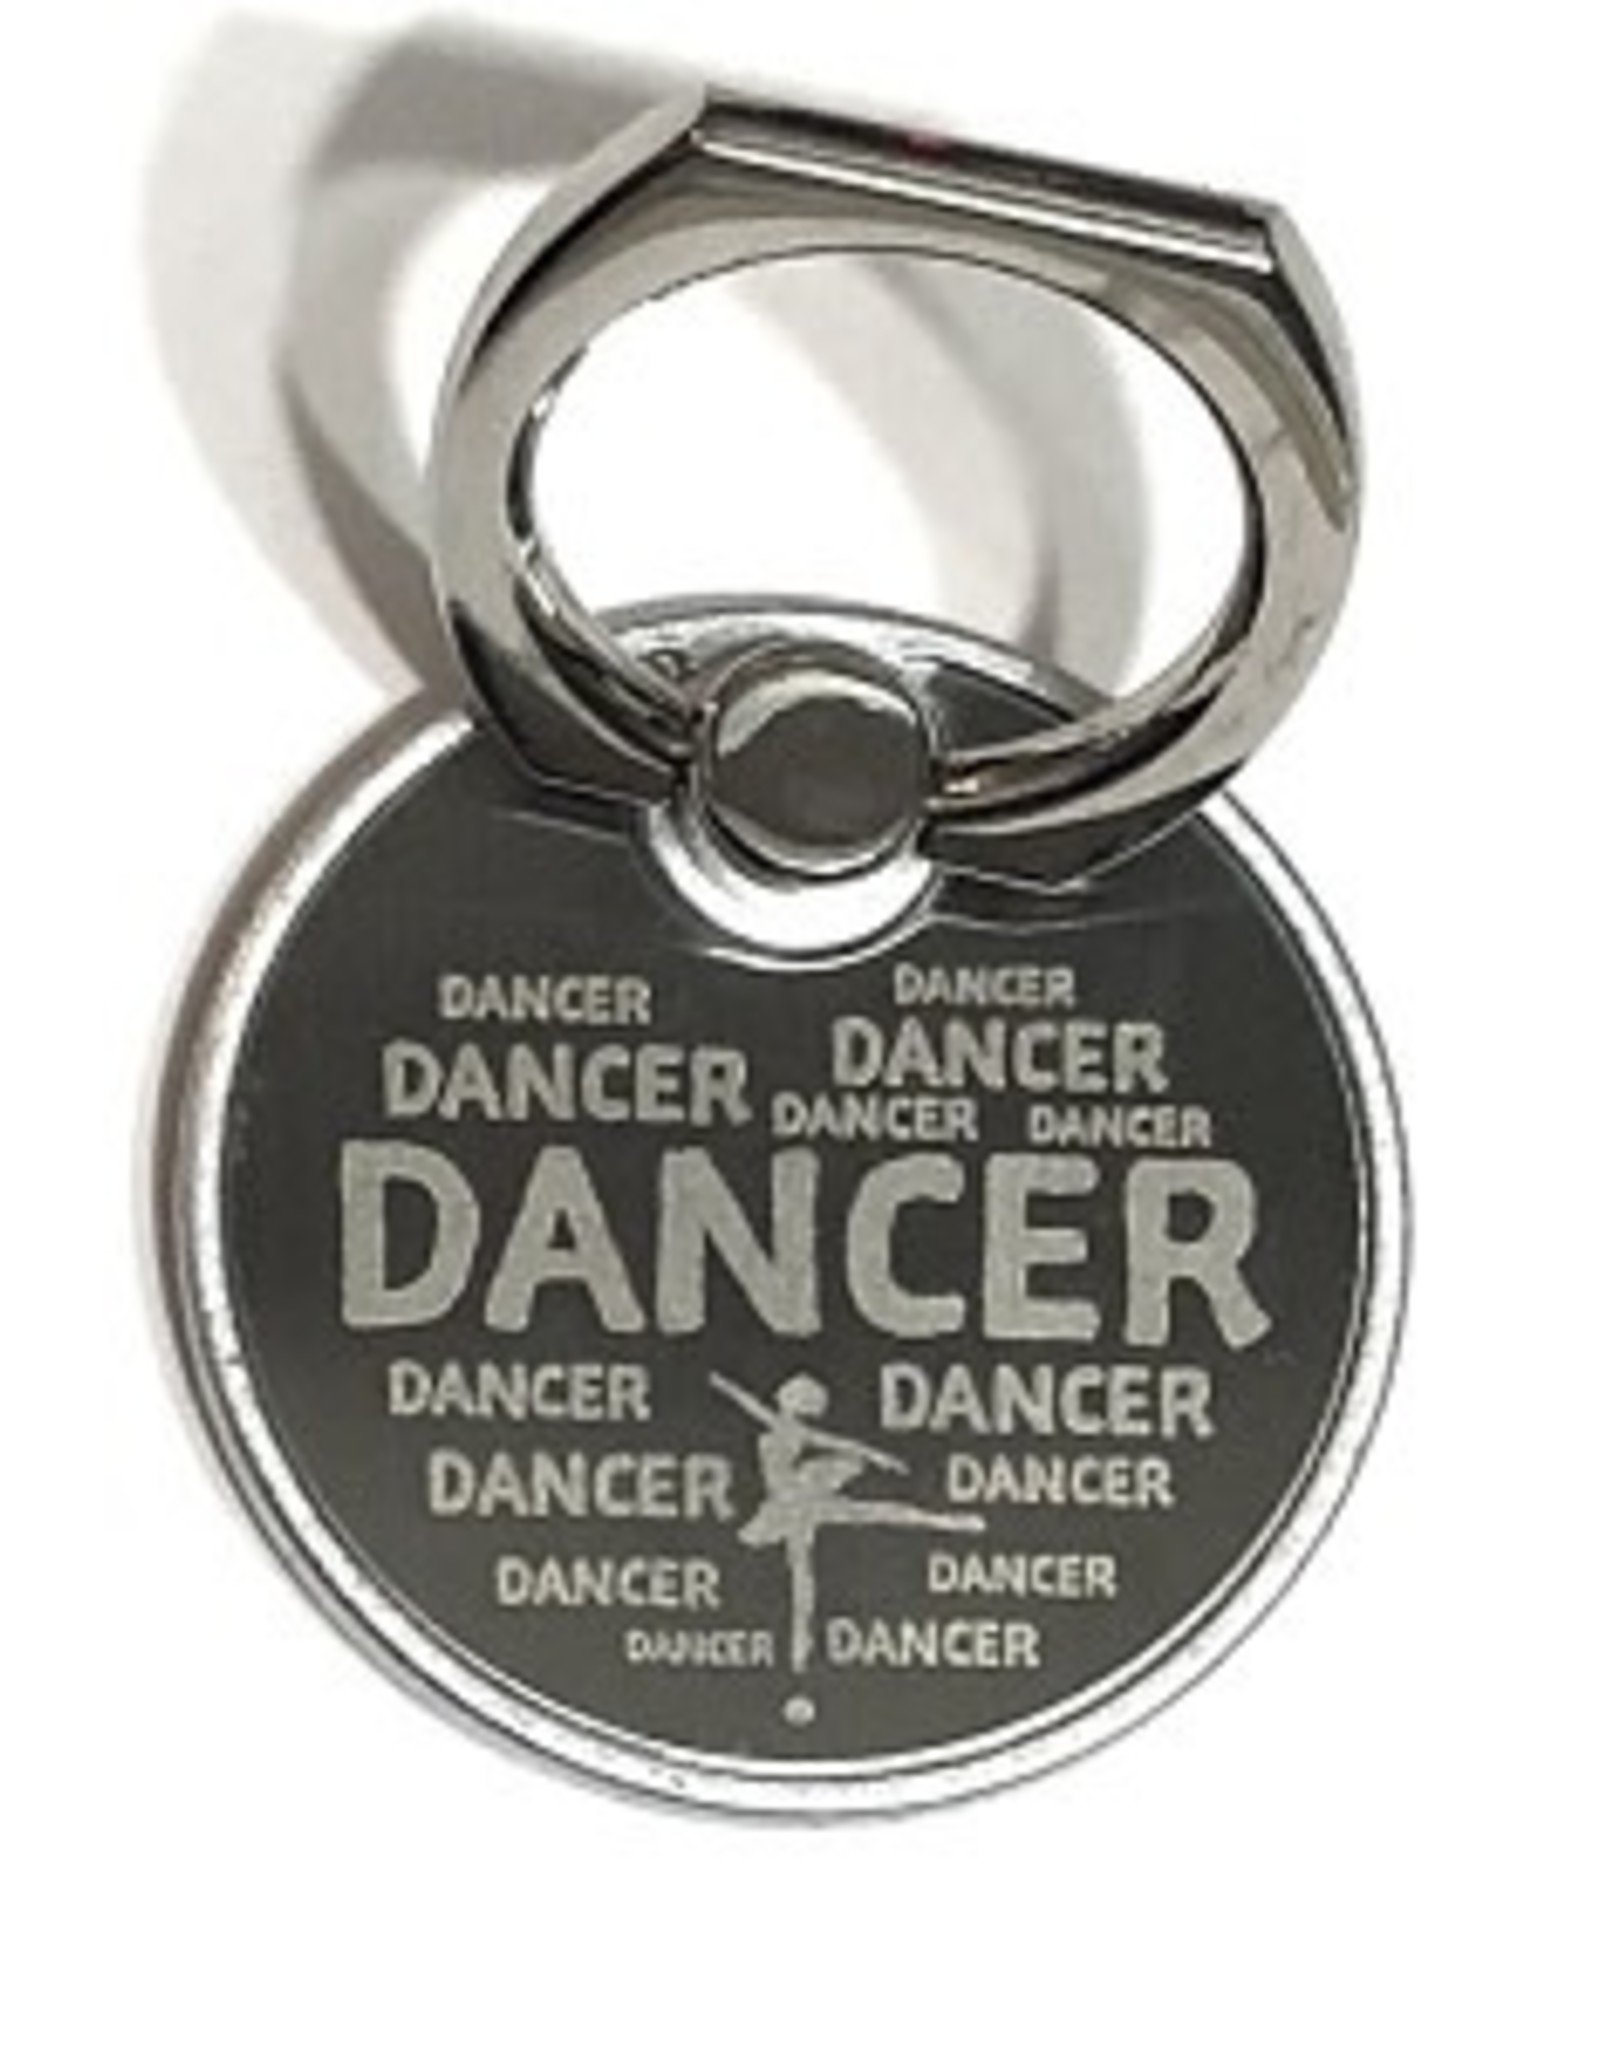 g420 Laser Engraved Metal DANCER Print Cell Phone Ring/Stand